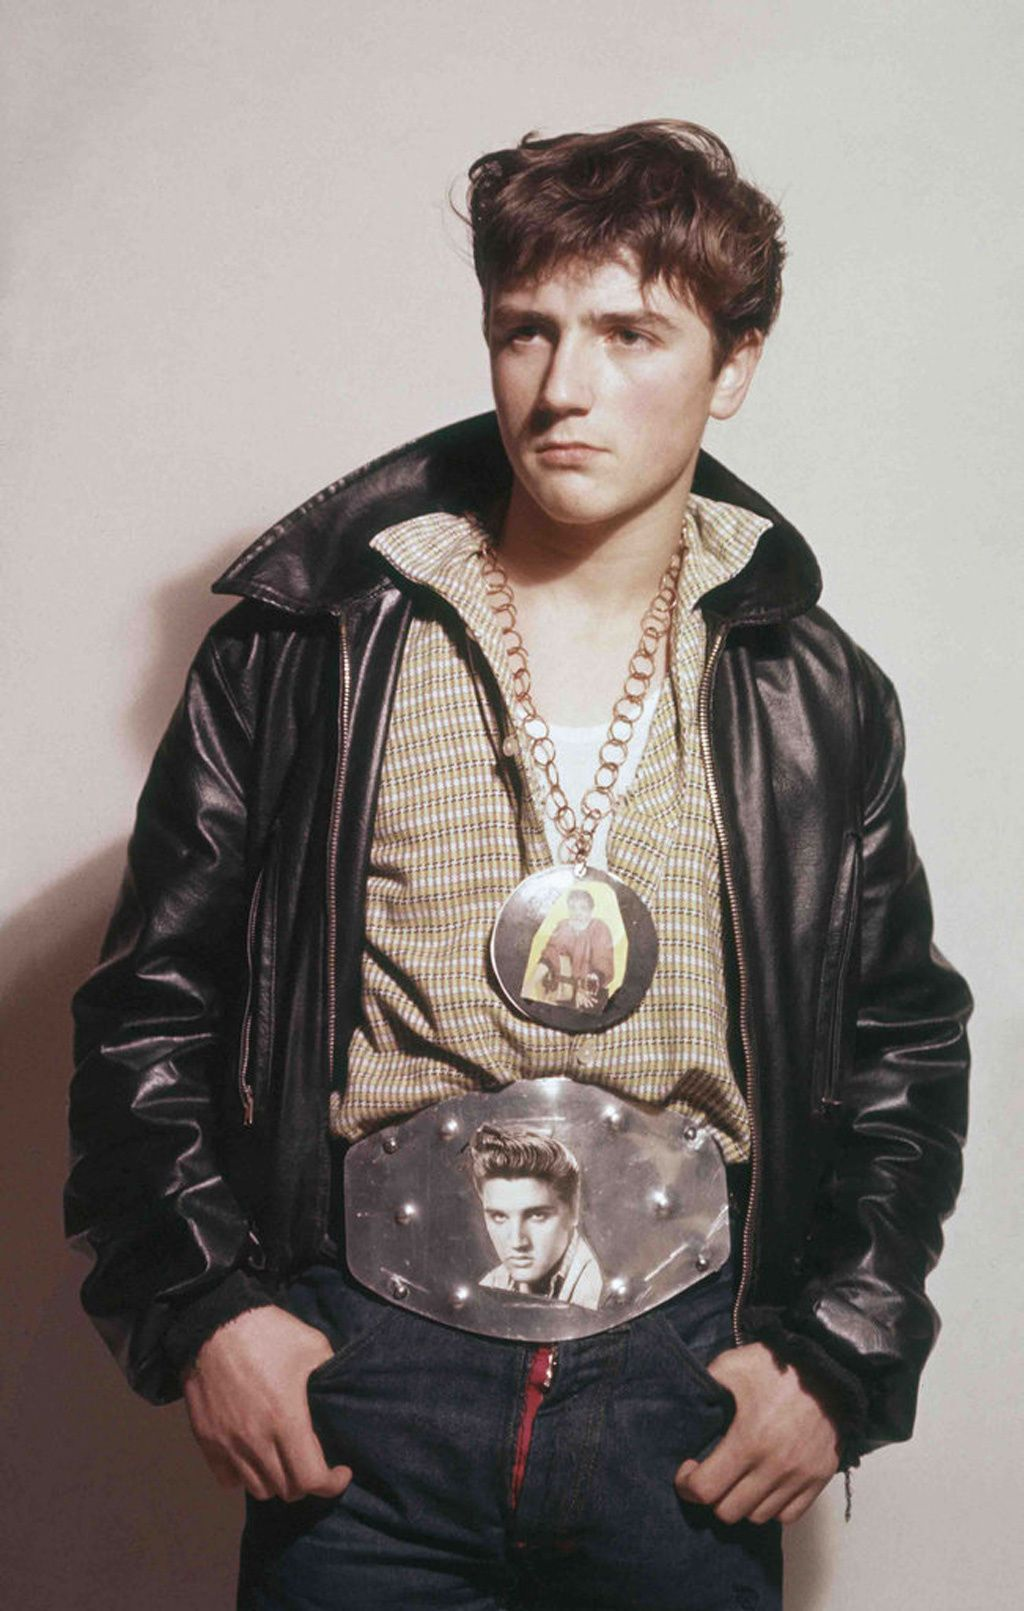 rebel youth karlheinz weinberger elvis belt